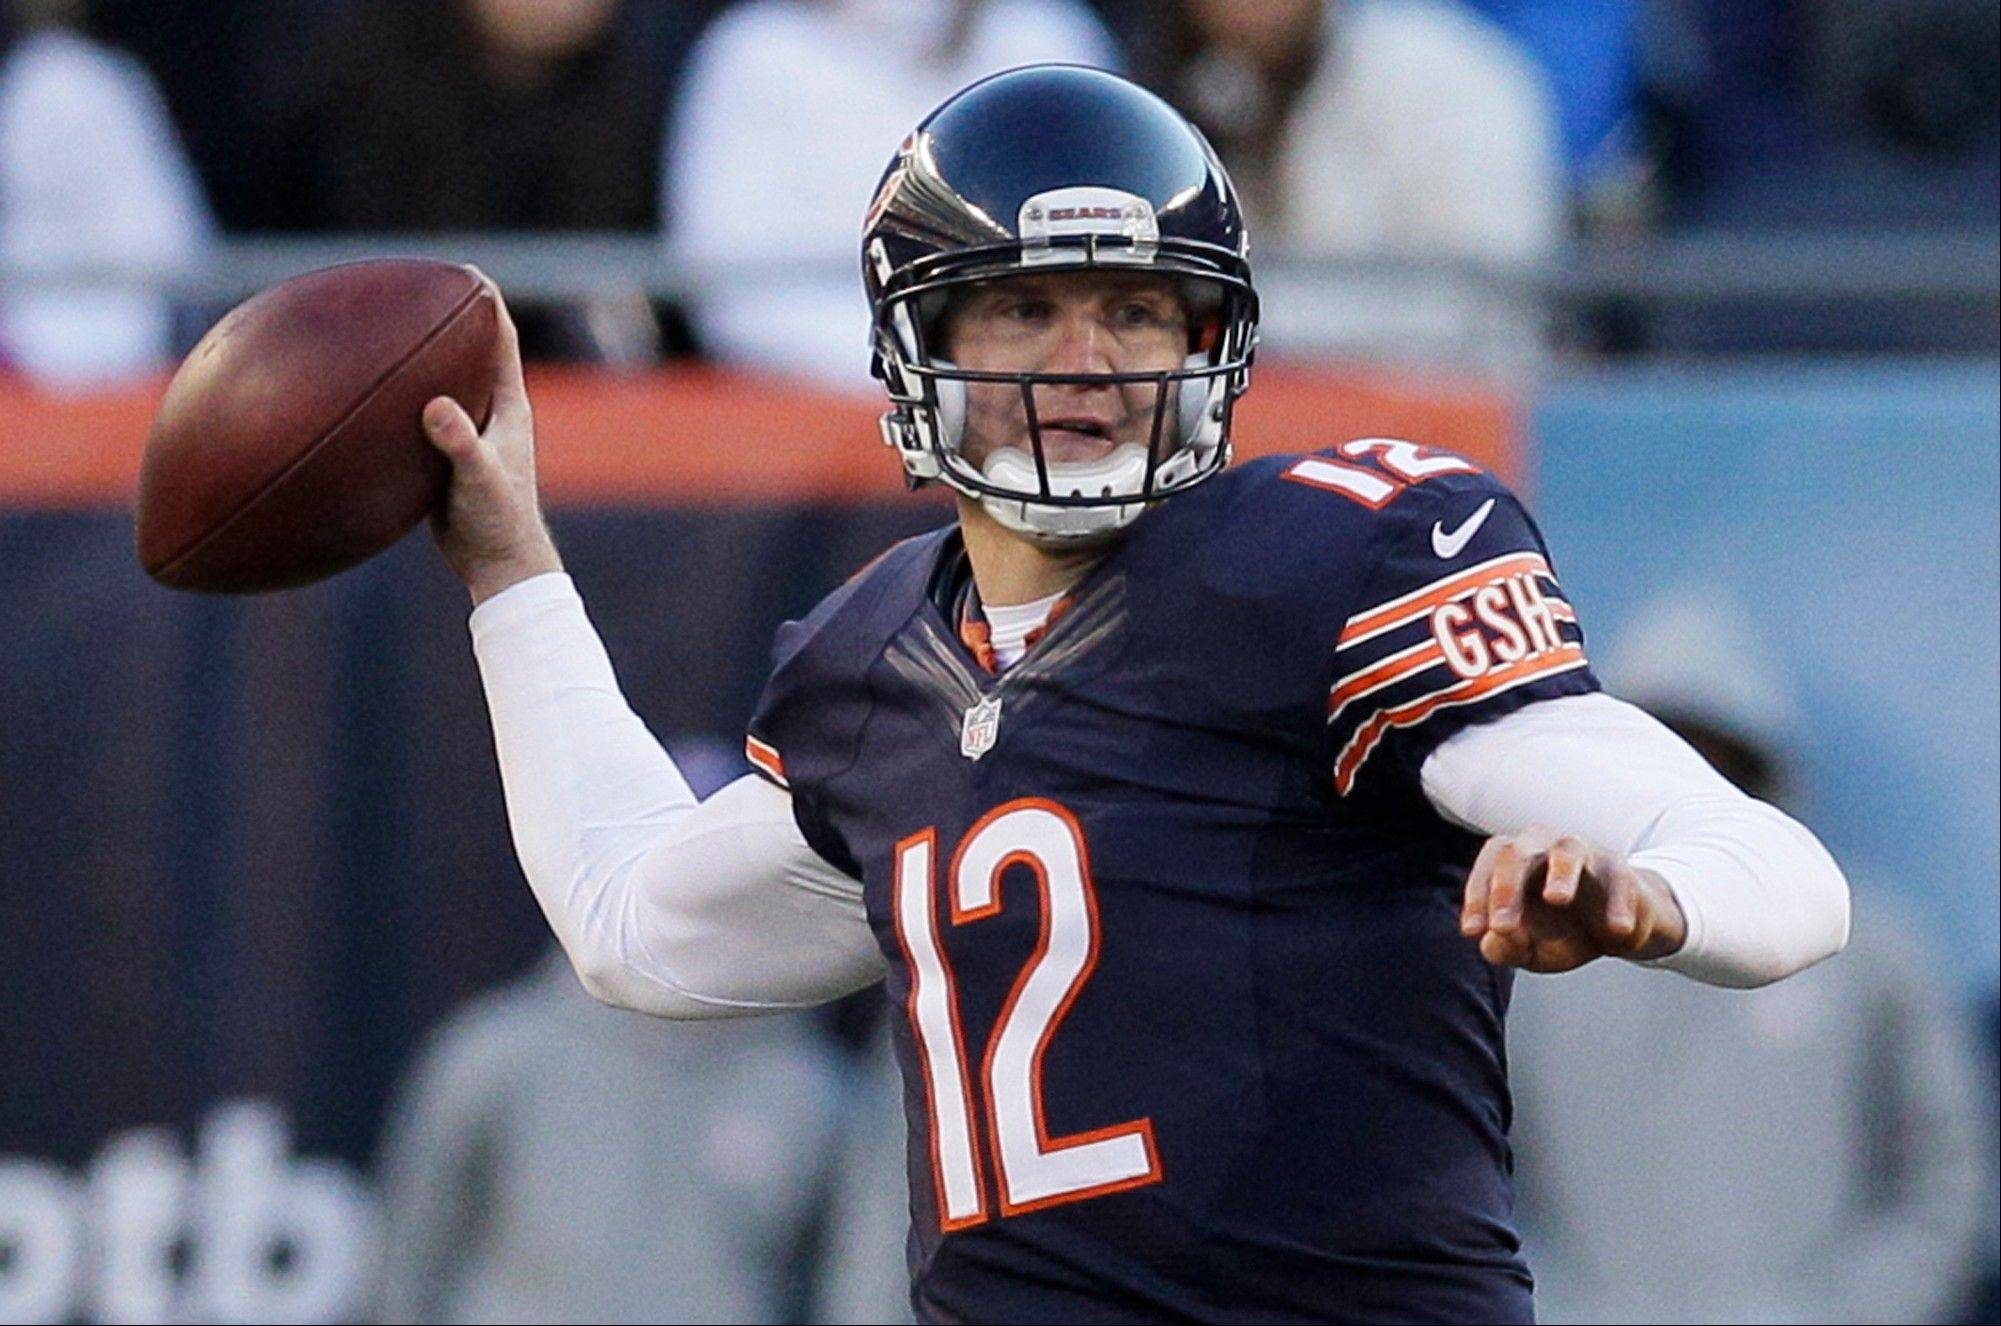 Josh McCown�s career passer rating was 71.2 coming into this season, but he�s compiled a 103.2 rating thus far in 2013.